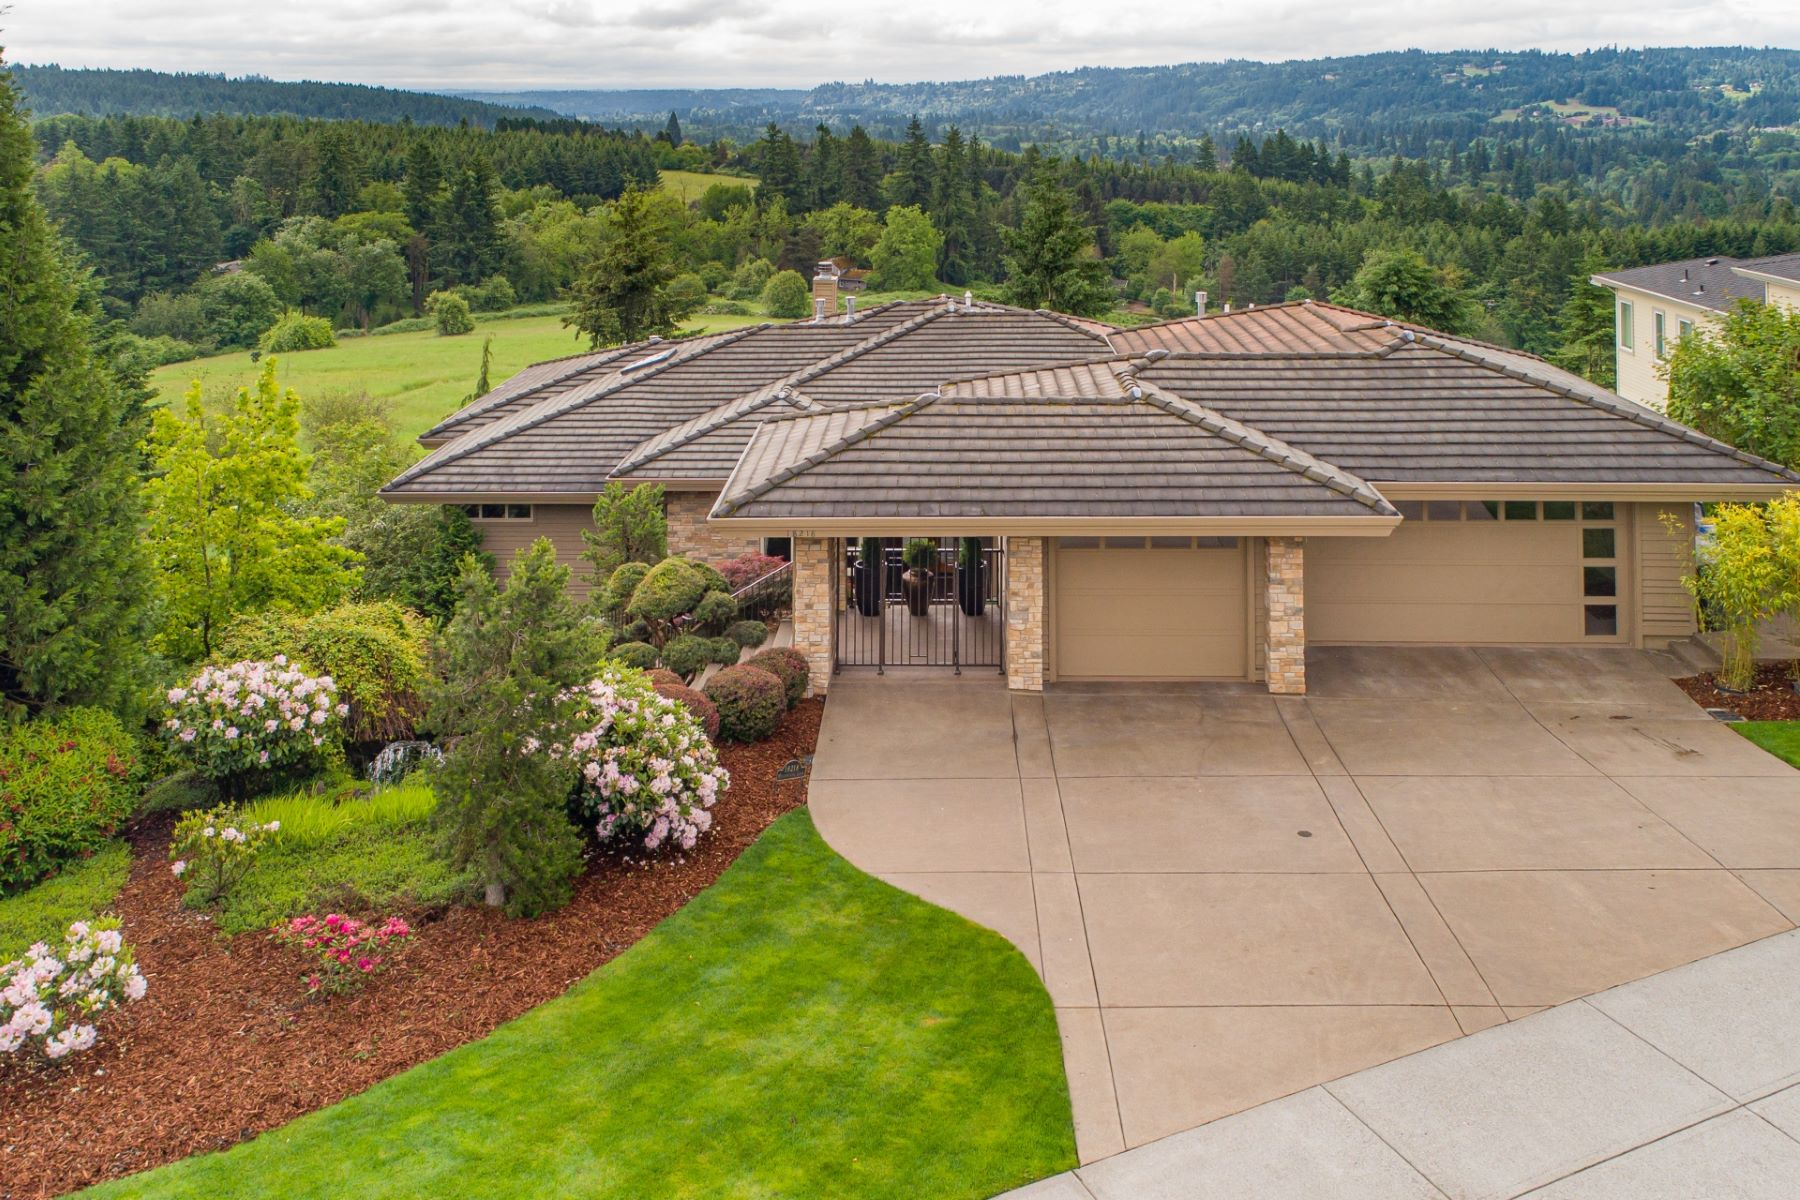 Single Family Homes for Active at 18218 Meadowlark Lane 18218 Meadowlark Ln Lake Oswego, Oregon 97034 United States